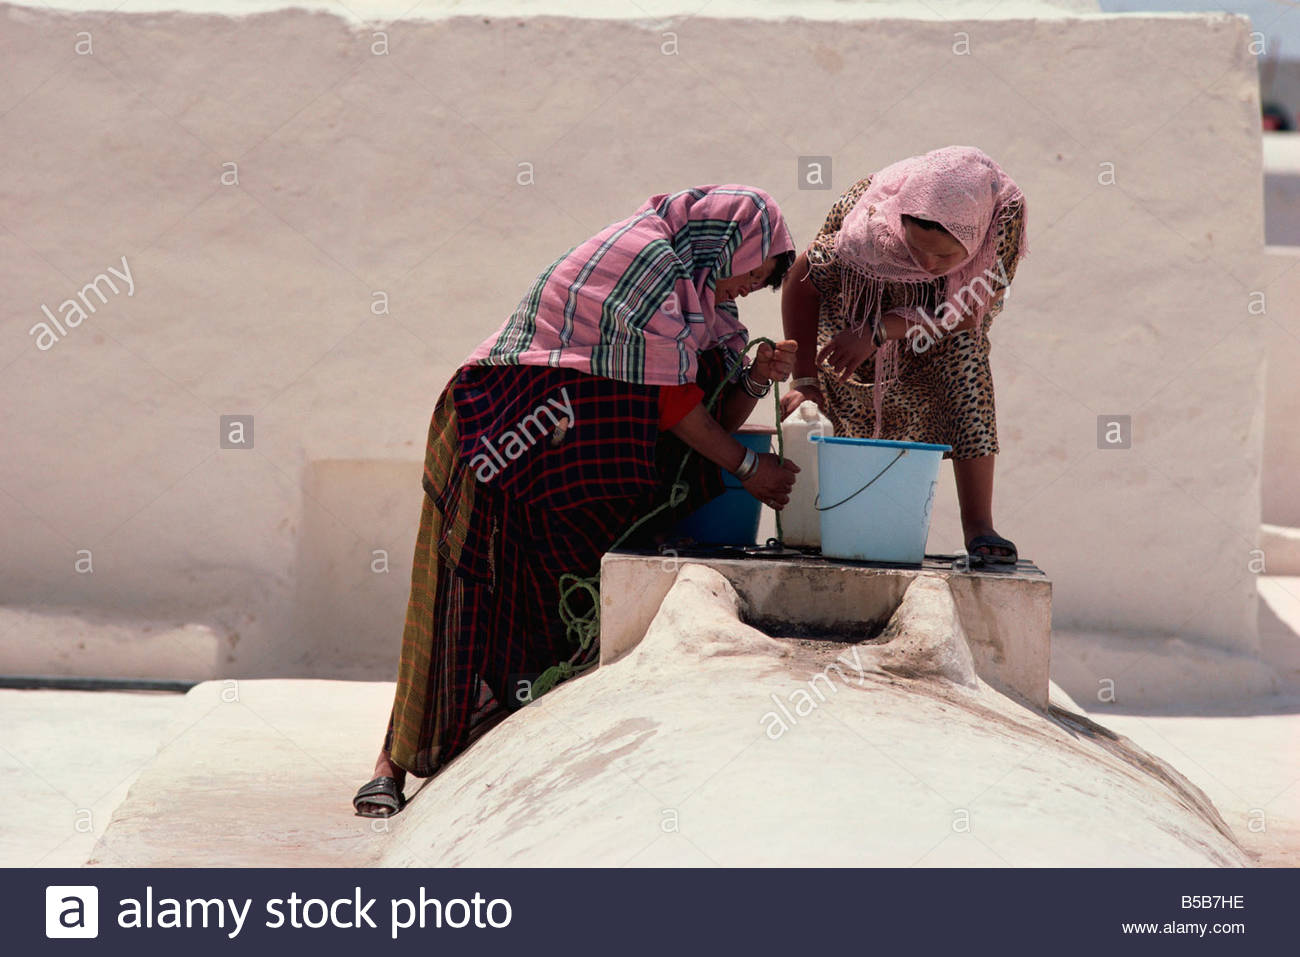 Women at mosque well, El May, Djerba, Tunisia, North Africa, Africa - Stock Image